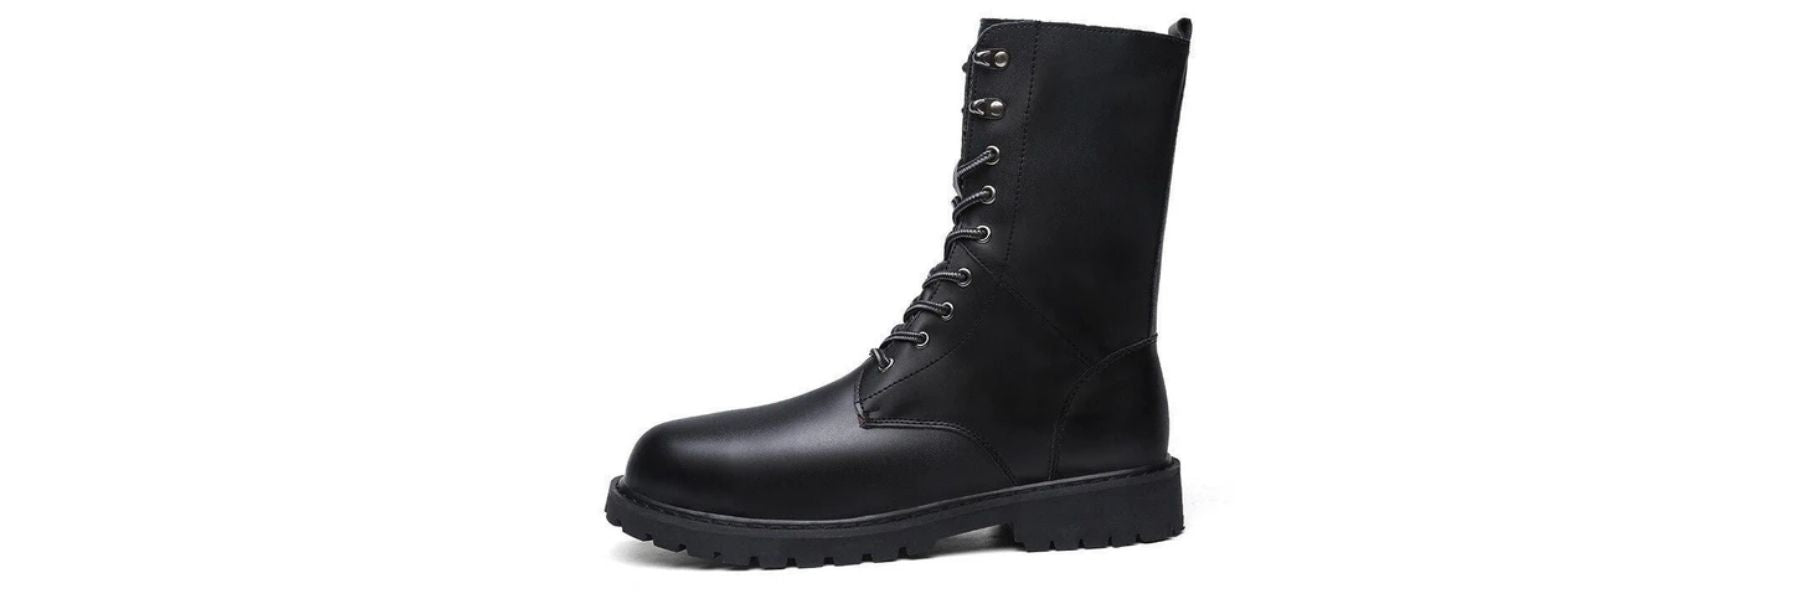 techwear high boots